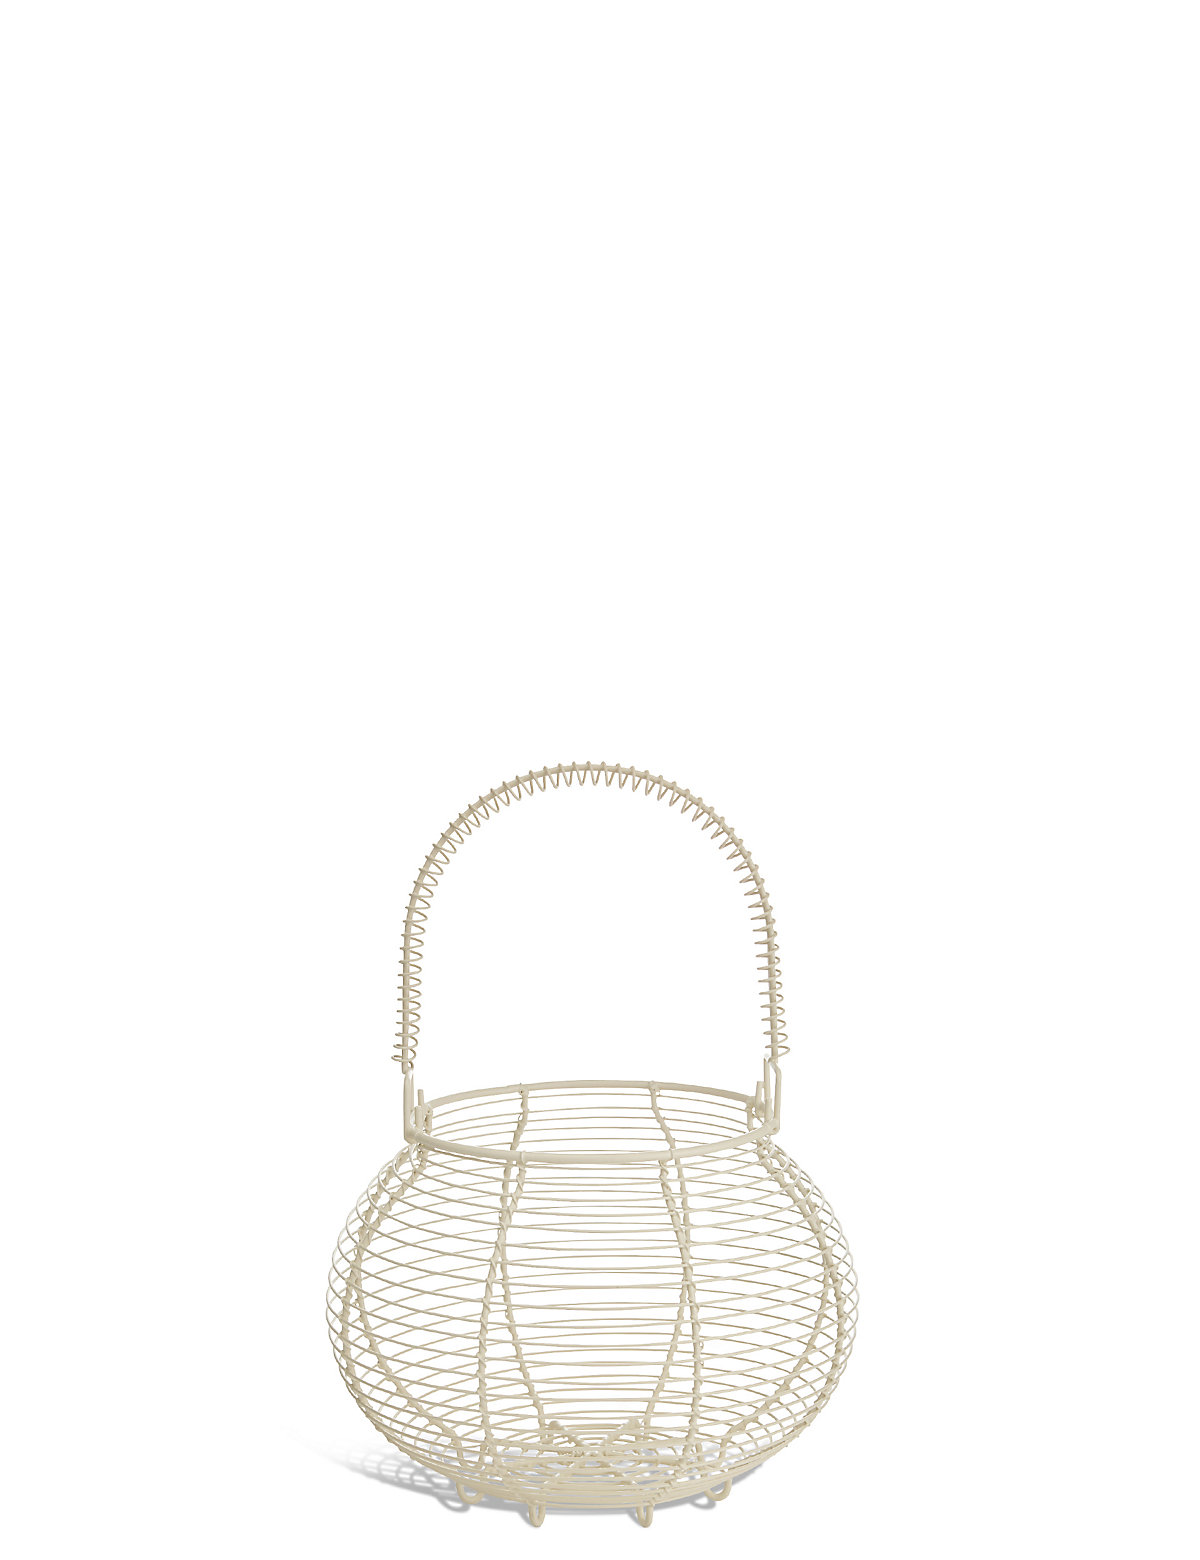 Easter gifts marks and spencer choice image gift and gift ideas easter gifts ms wire egg basket negle choice image negle Image collections